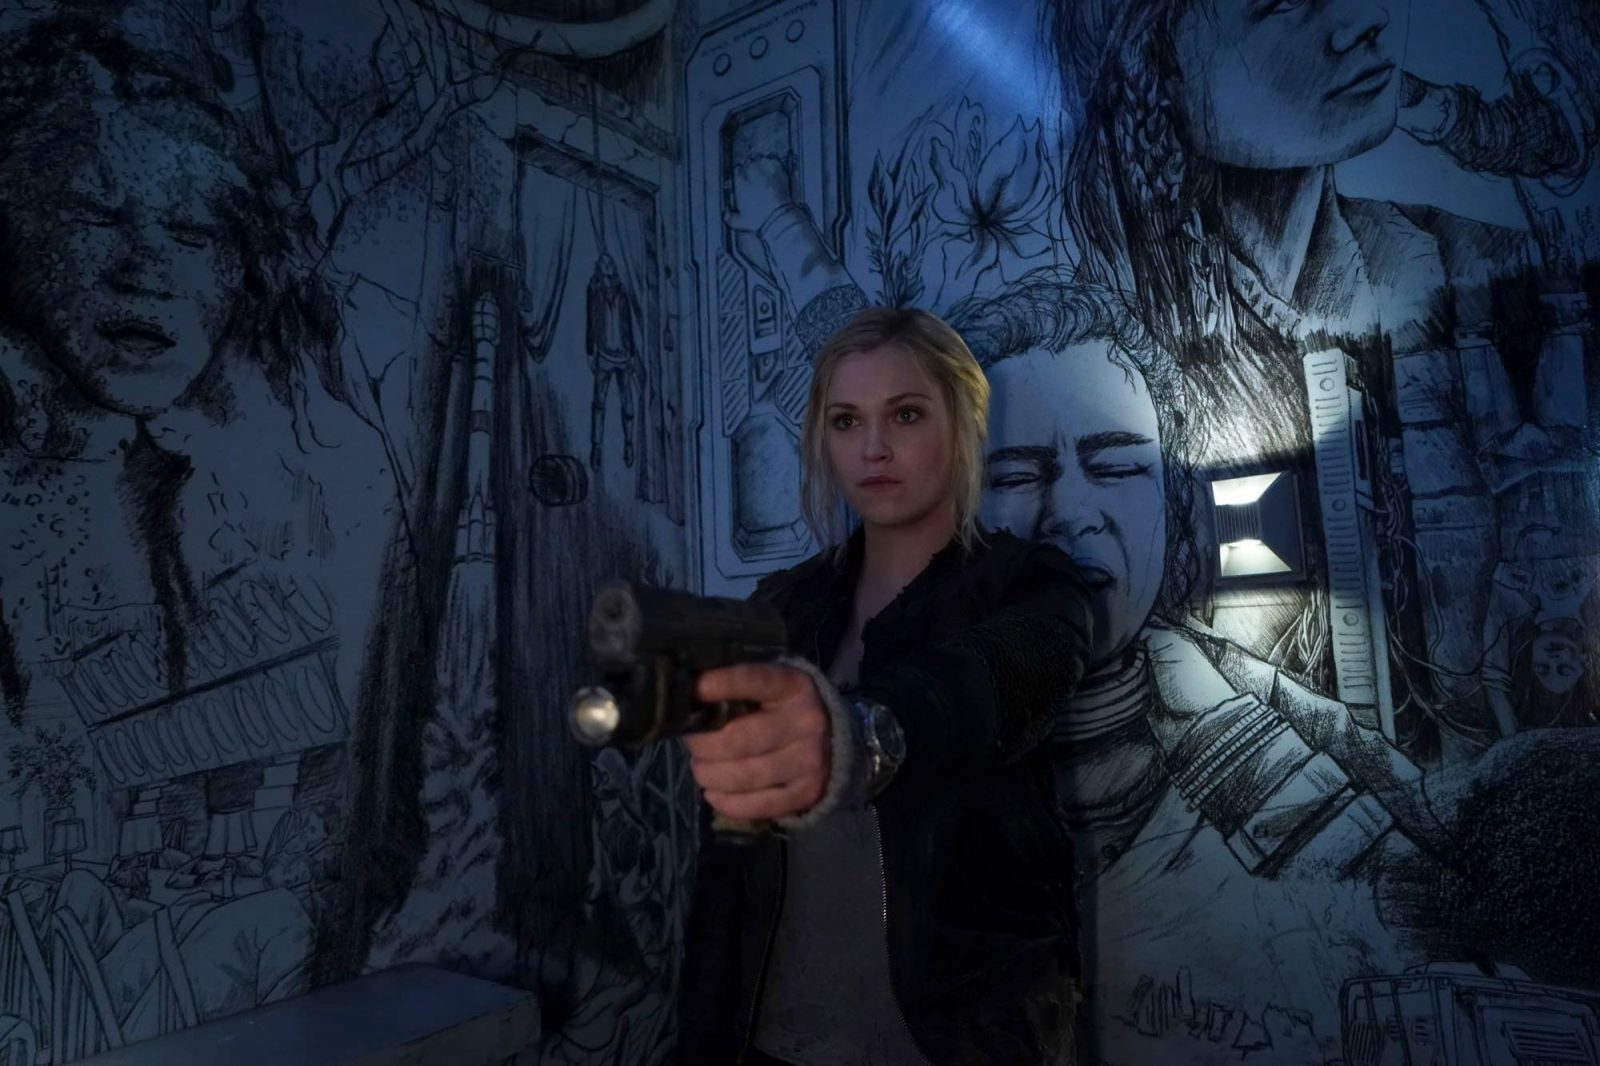 Eliza Taylor como Clarke en The 100 Temporada 6 Capitulo 8 The Old Man and the Anomaly